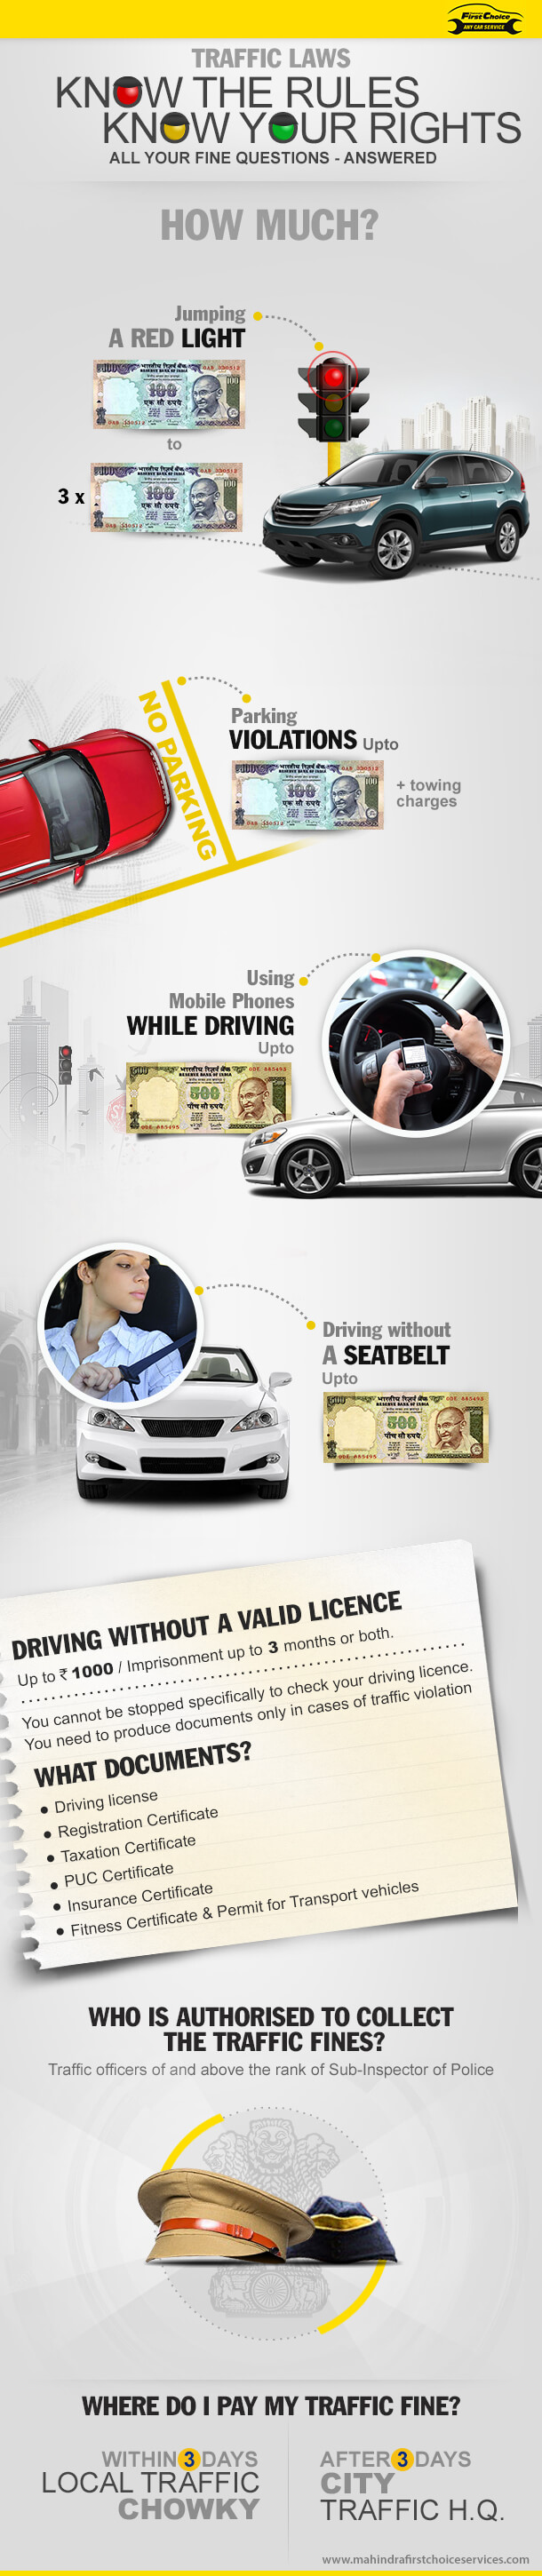 Traffic Laws - Mahindra First Choice Services